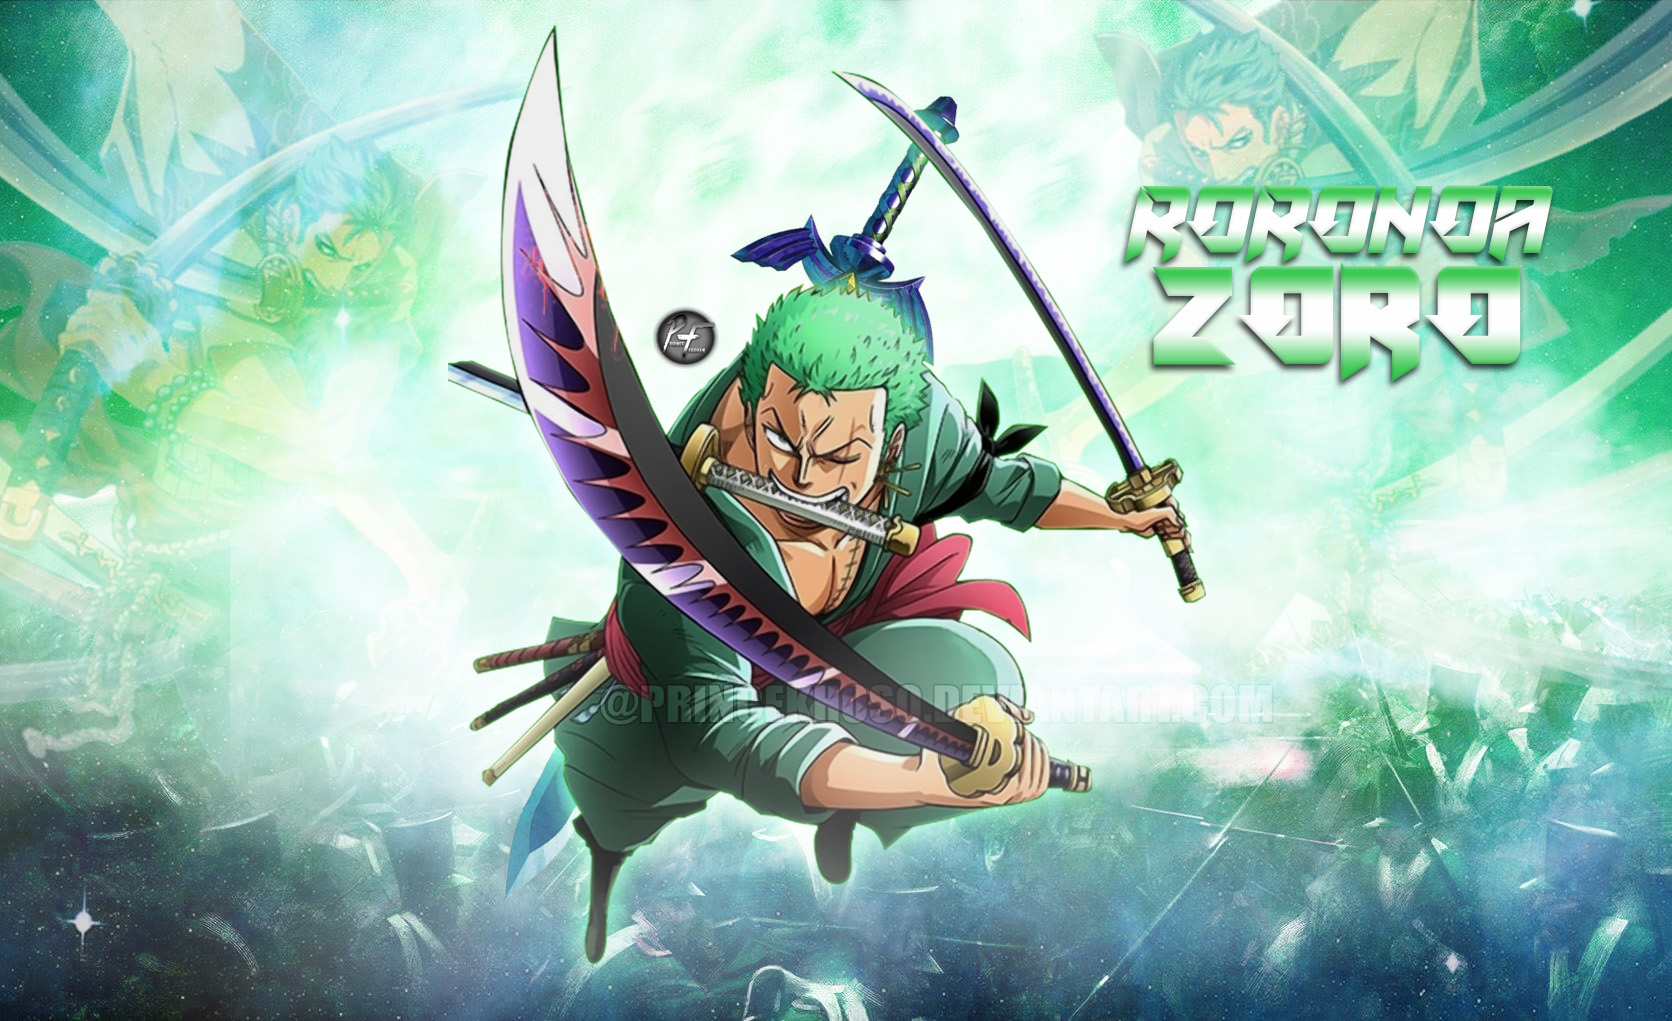 One Piece Roronoa Zoro Wallpaper Hd By Princekhoso On